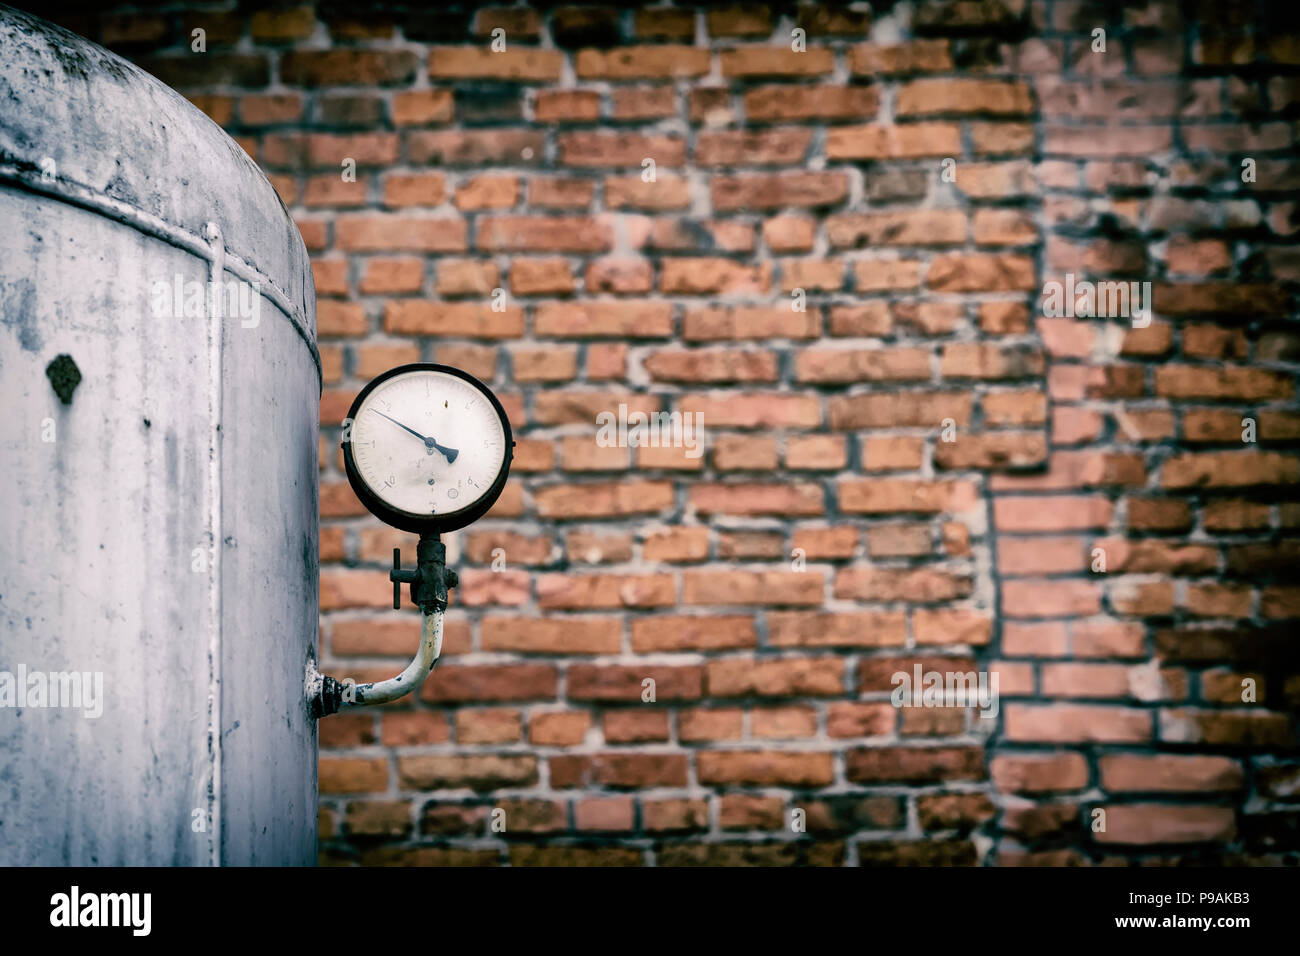 Old pressure gauge of the tank against the backdrop of a brick wall. Pressure sensor - Stock Image